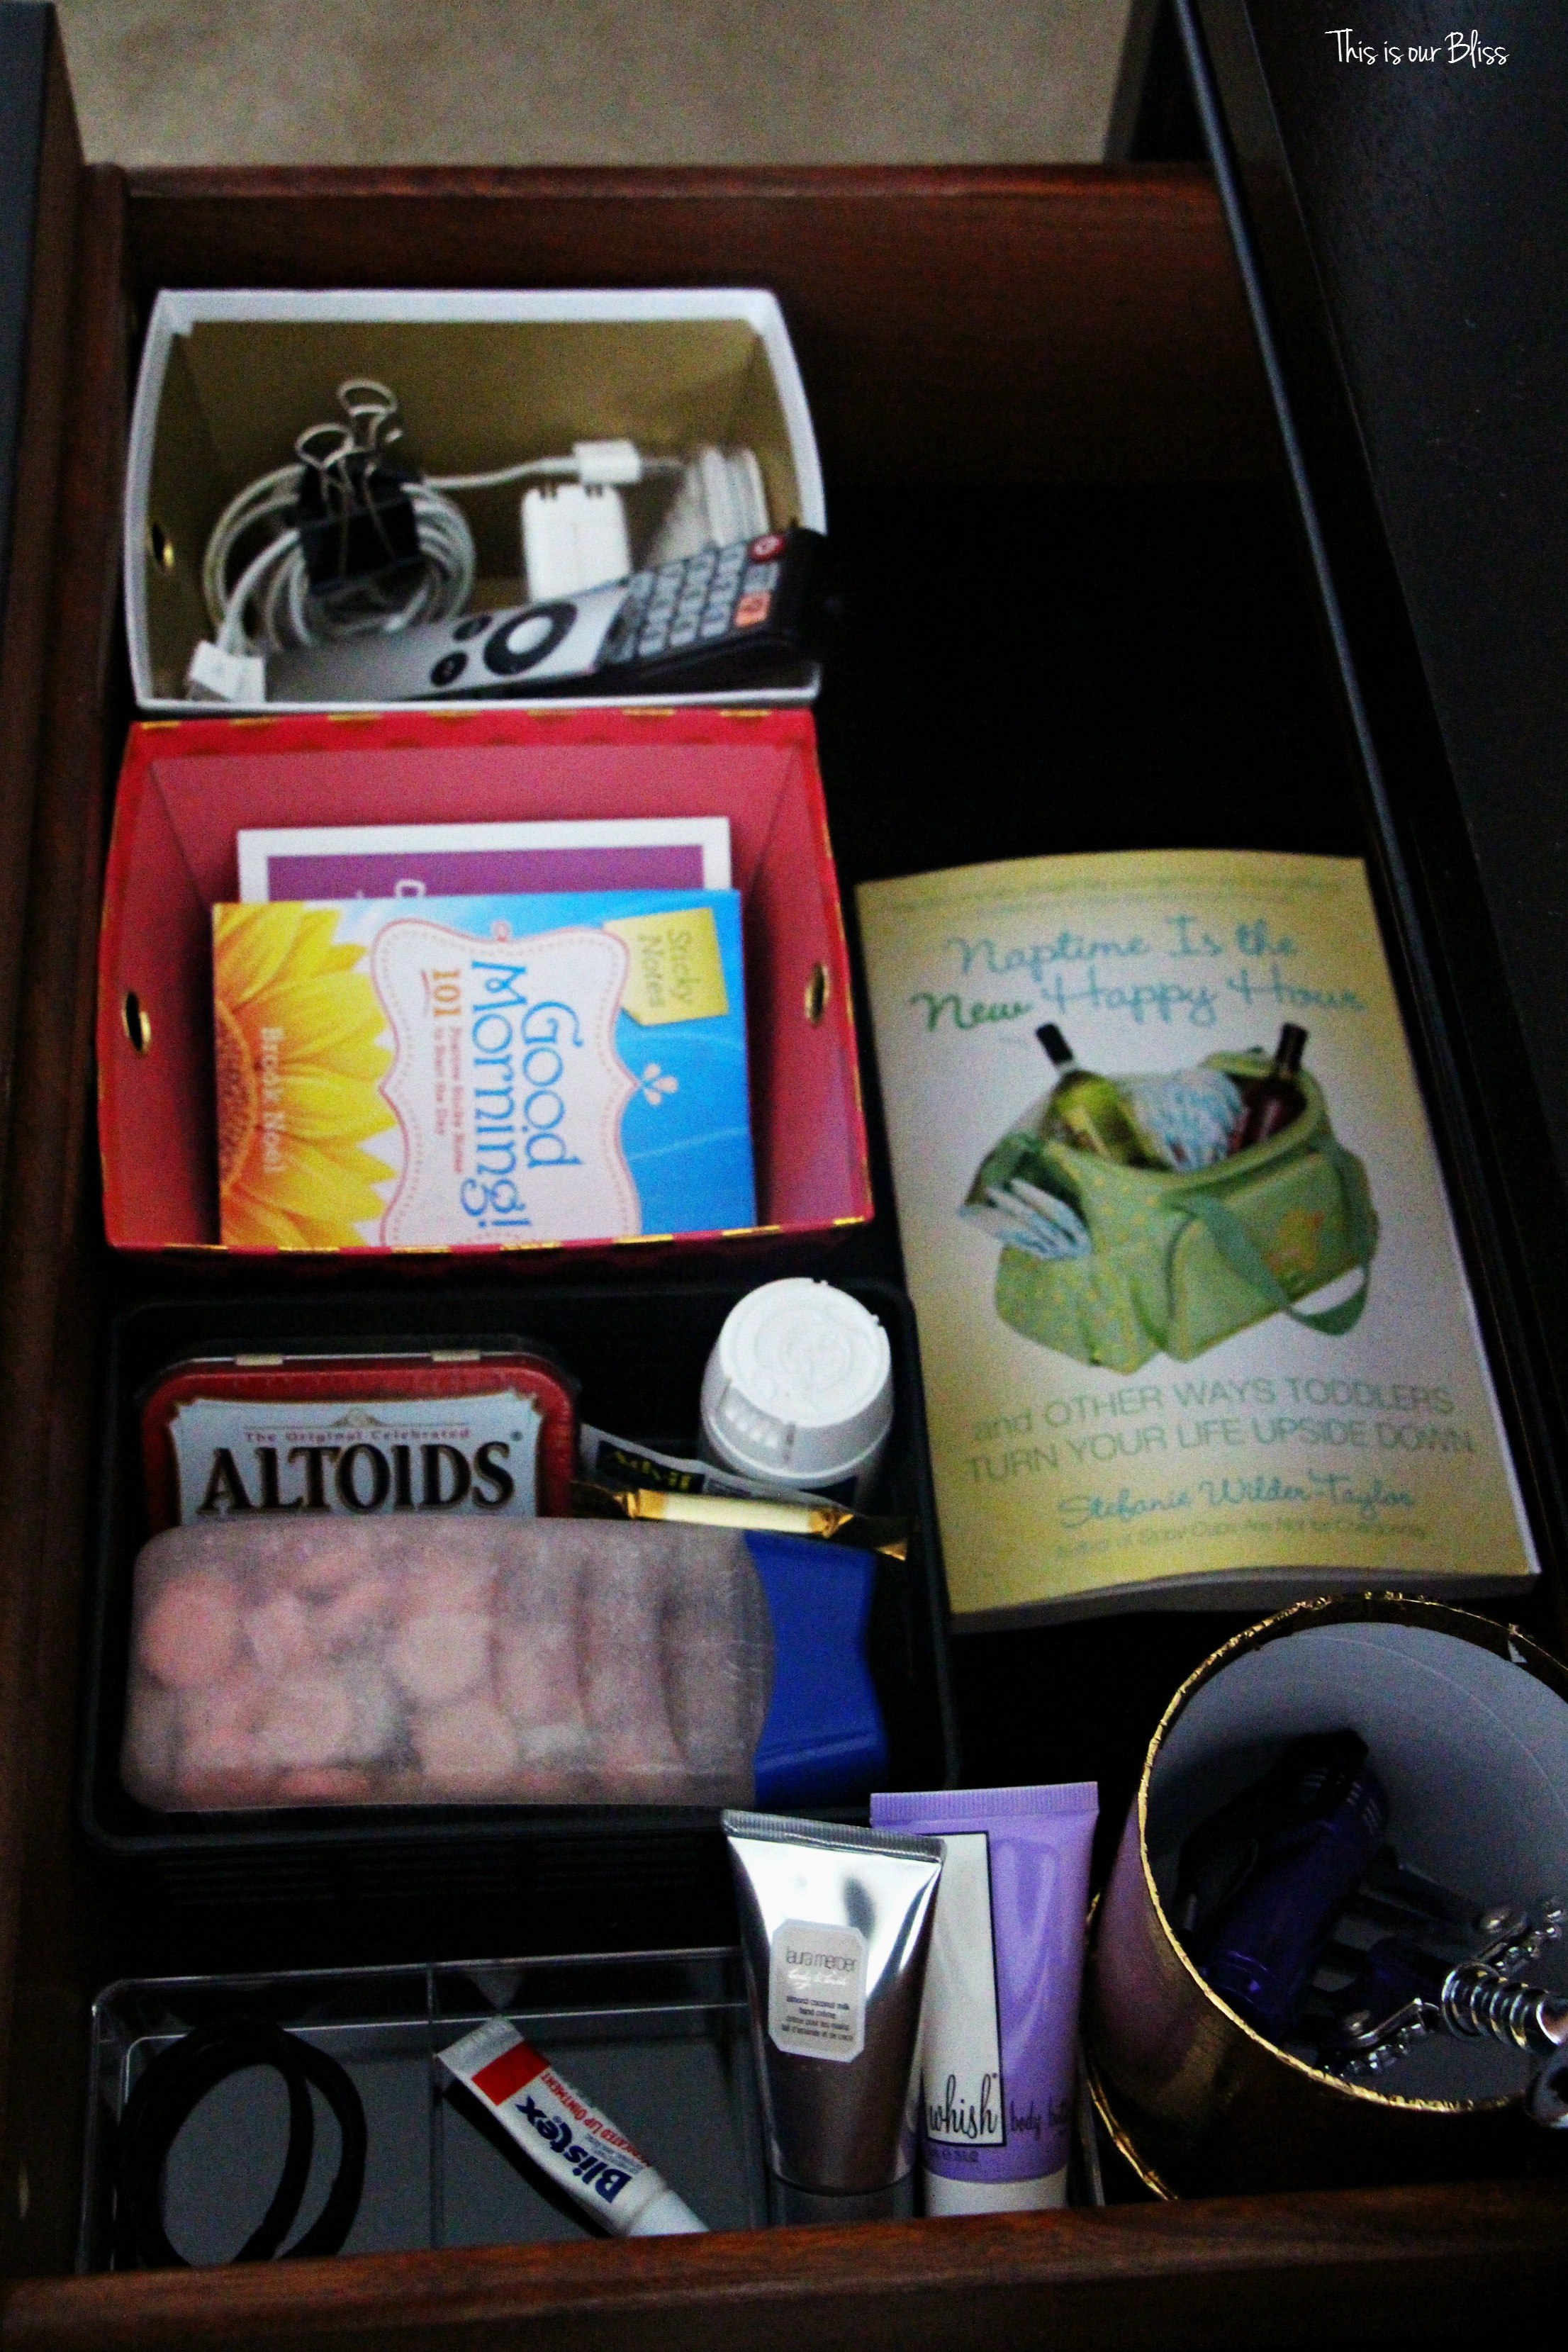 How To Organize Your Bedside Table Drawer Nightstand Organization Drawer Organization This Is Our Bliss Www Thisisourbliss Com This Is Our Bliss